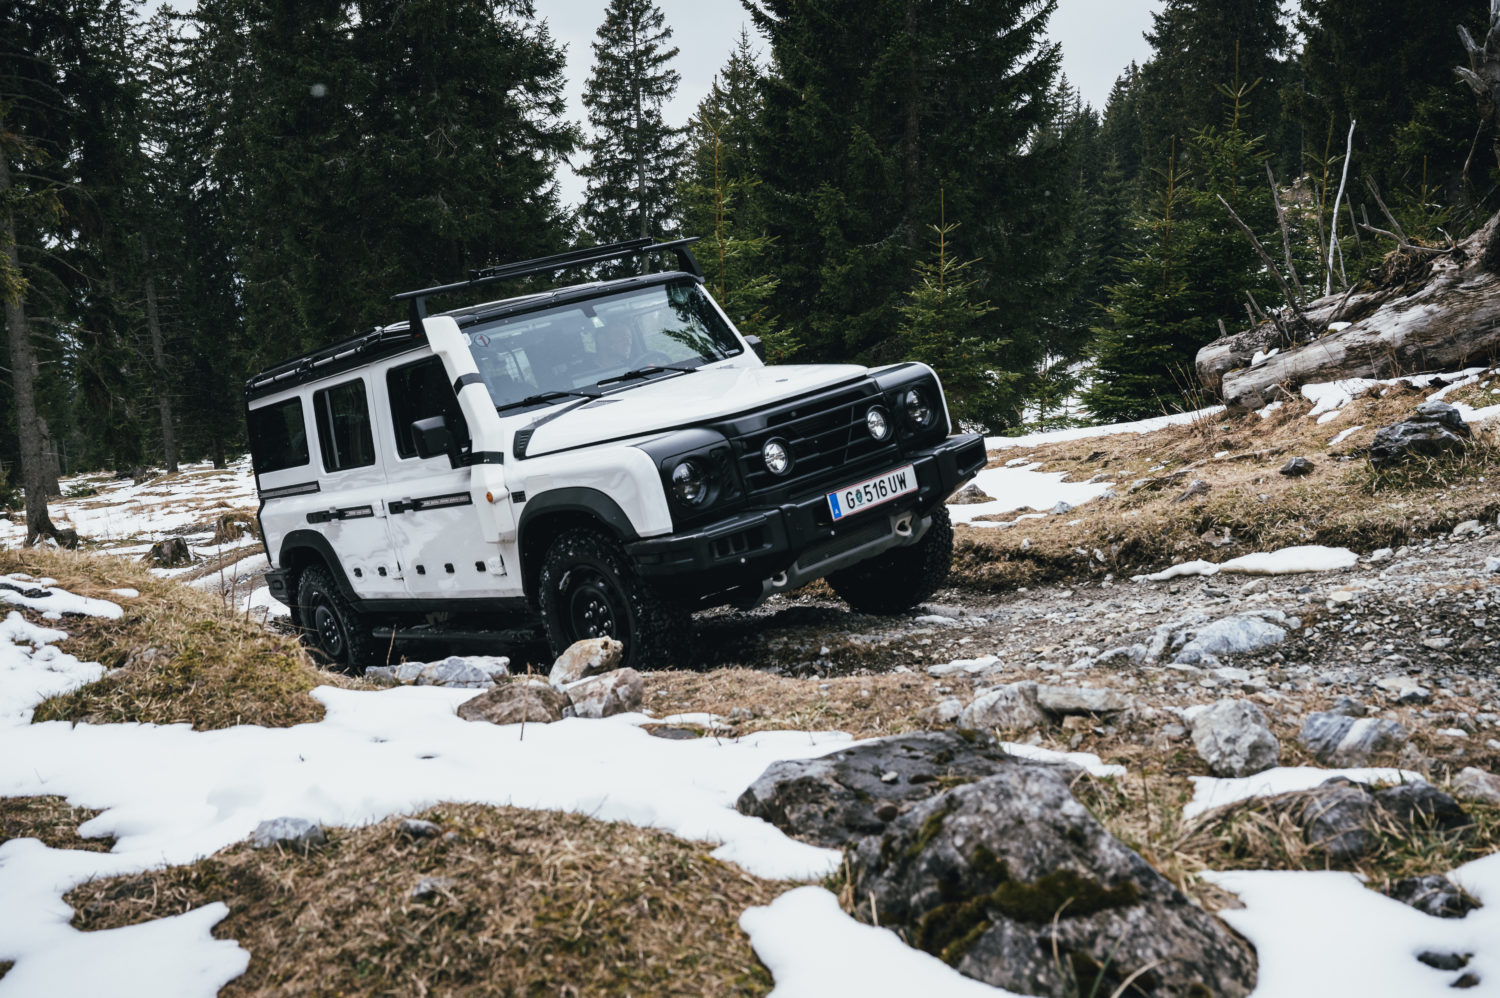 Grenadier 4×4 completes key off-road testing in Austrian mountains